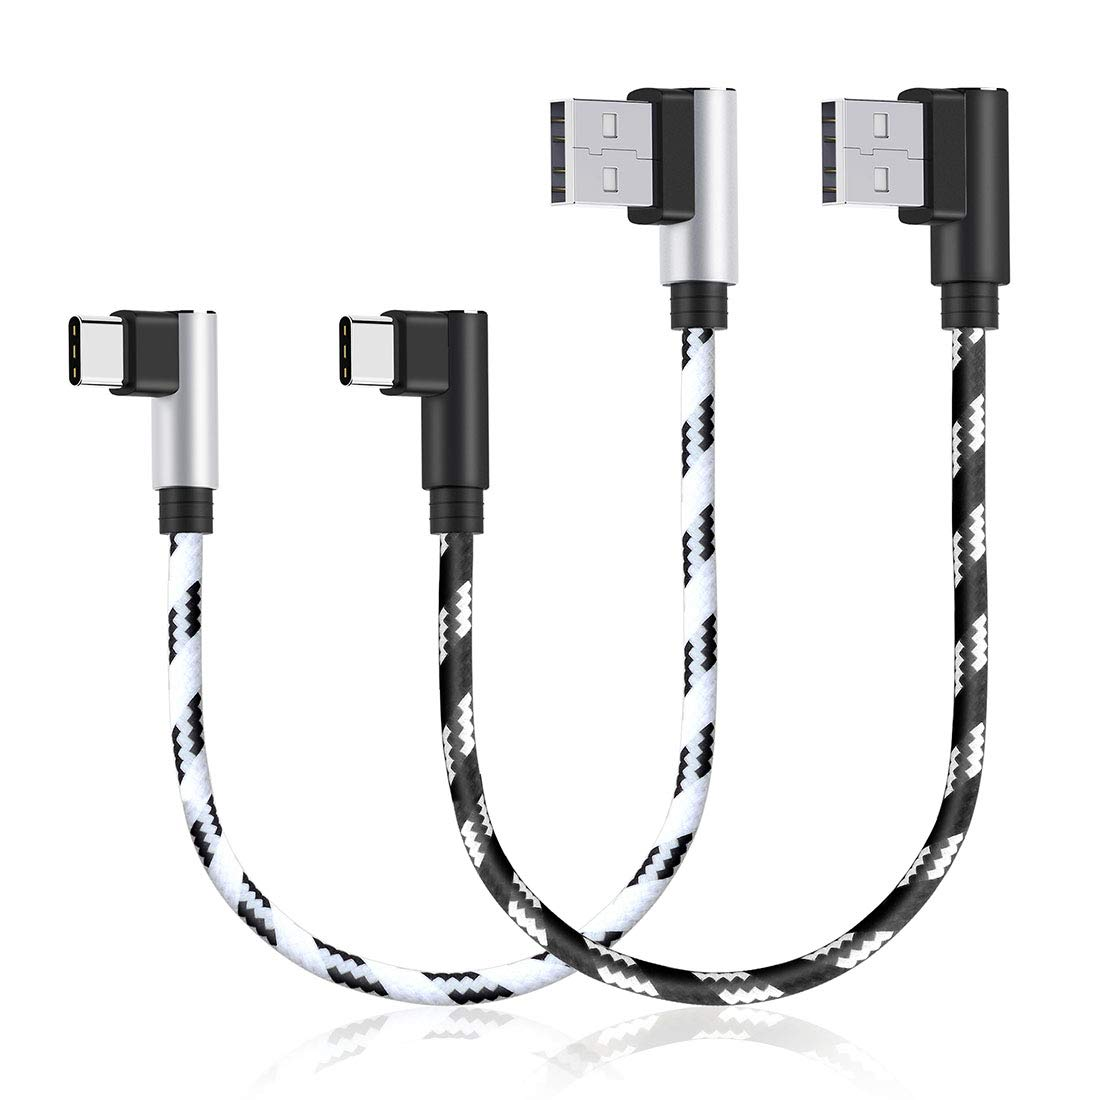 USB C Charging Cable, CIKOO 2 Pack 1Ft Nylon Braided USB Type C Right Angle Fast Charger Cable Data Sync for Galaxy Note 10 9 8 S8 S9 S10 Oneplus 5 6T ...